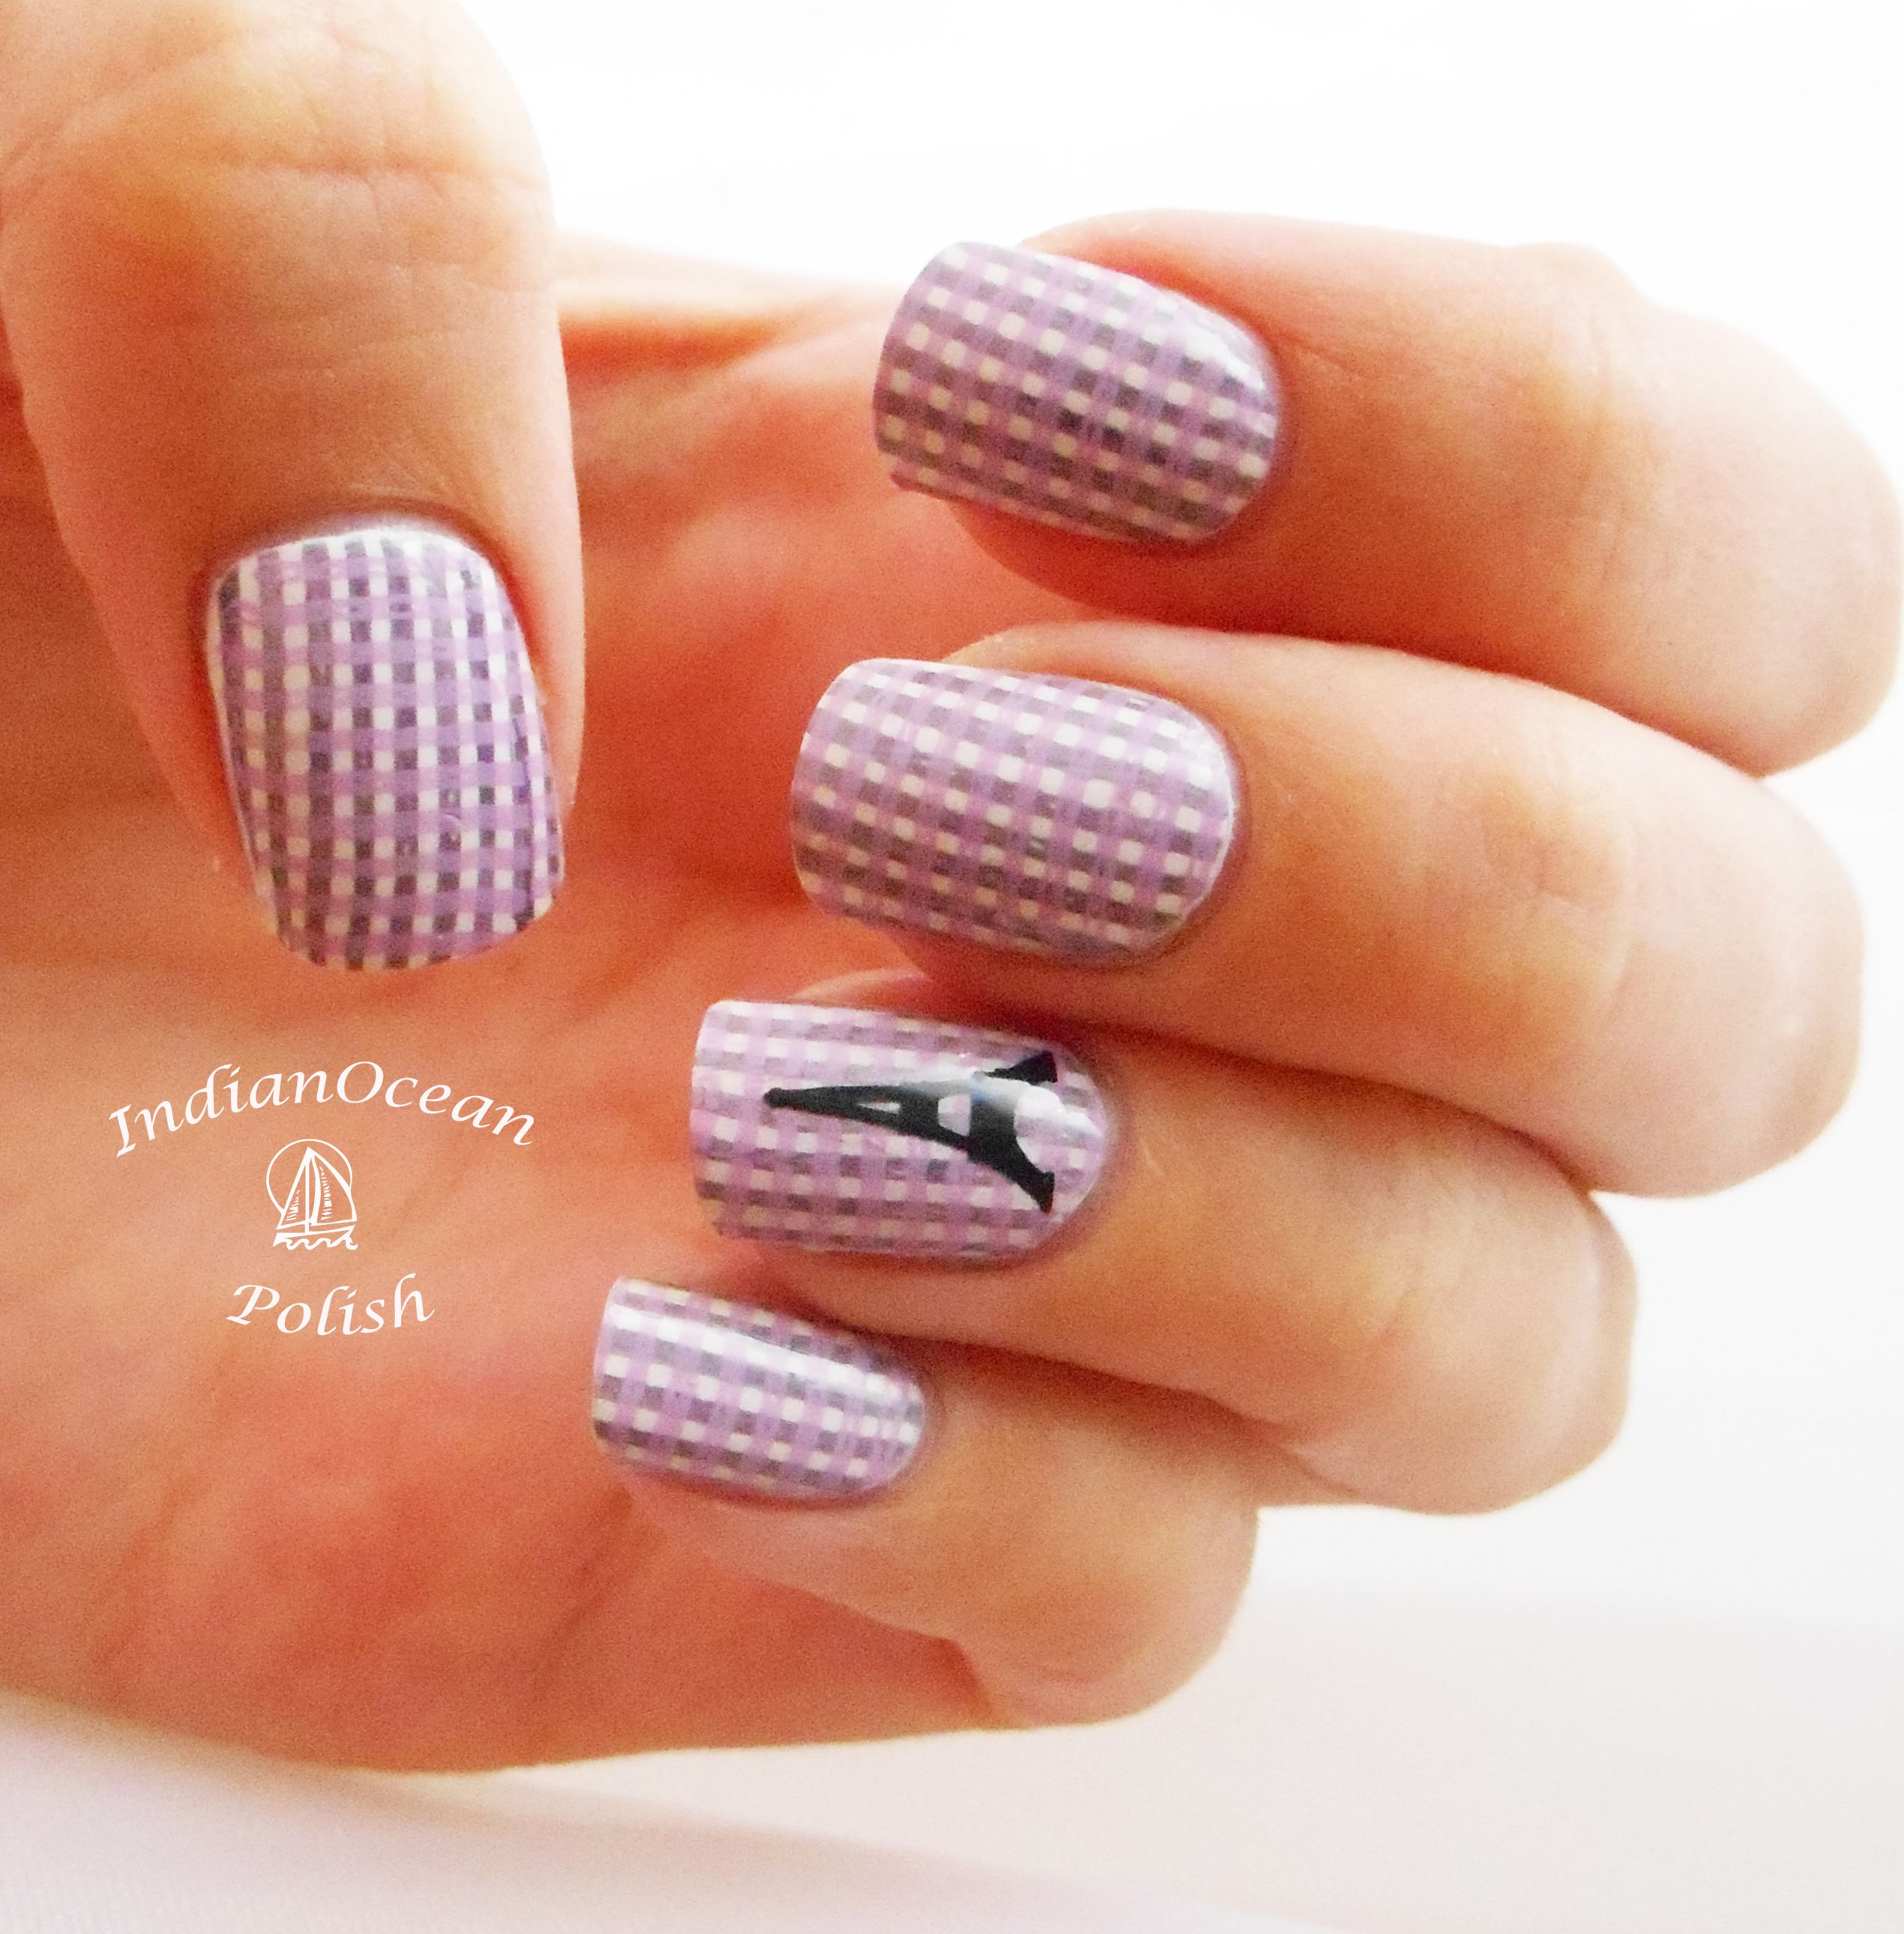 By+Chan+Fie.+#nailart+#nails+@Bloom.com